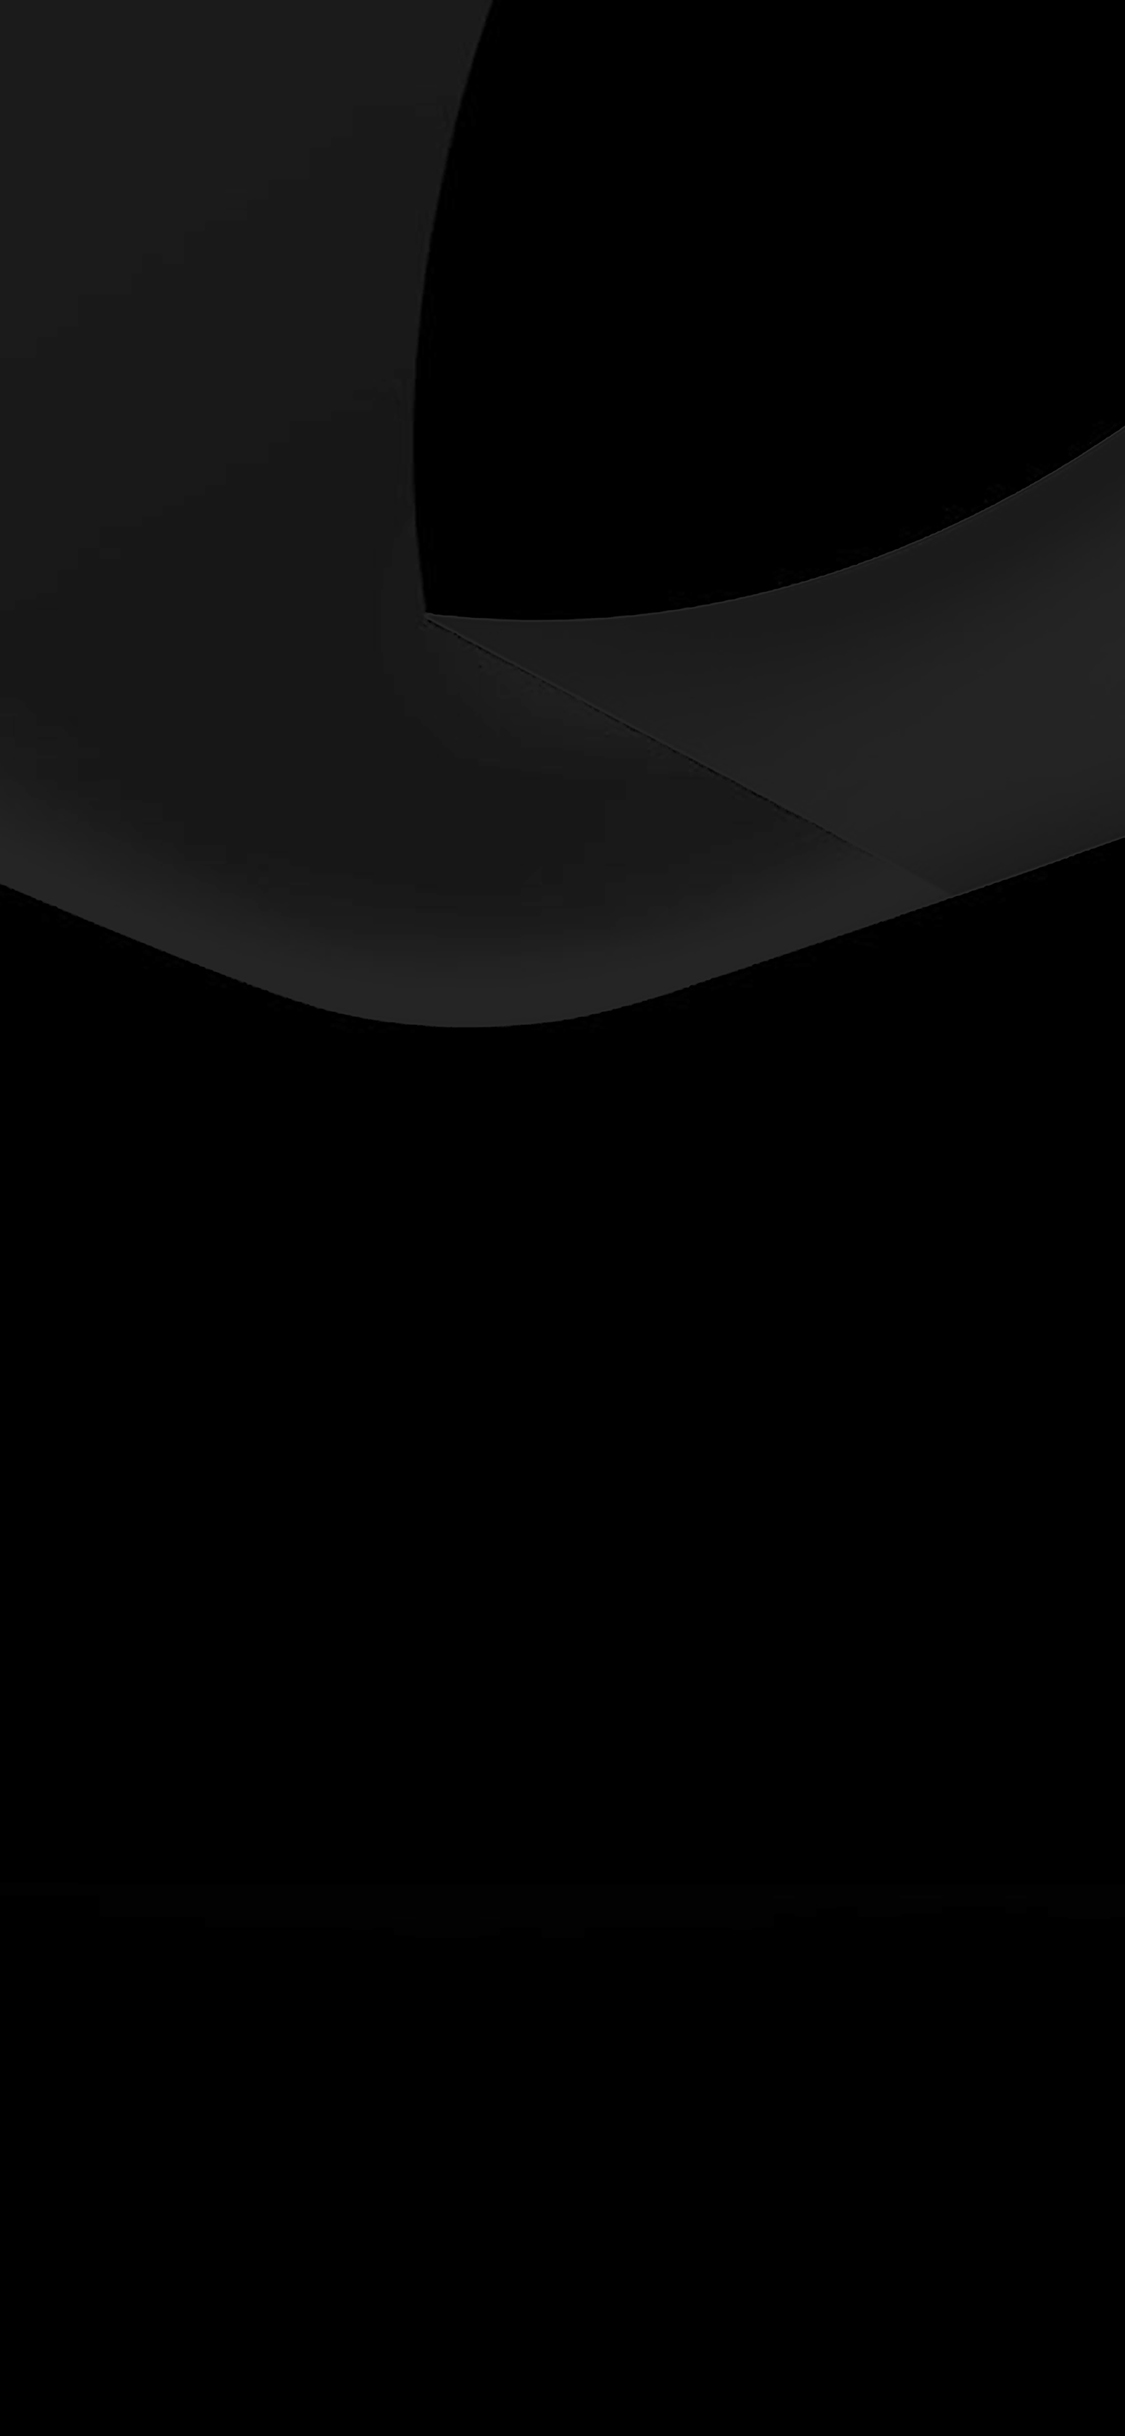 iPhoneXpapers.com-Apple-iPhone-wallpaper-ac87-wallpaper-apple-dark-live-2014-minimal